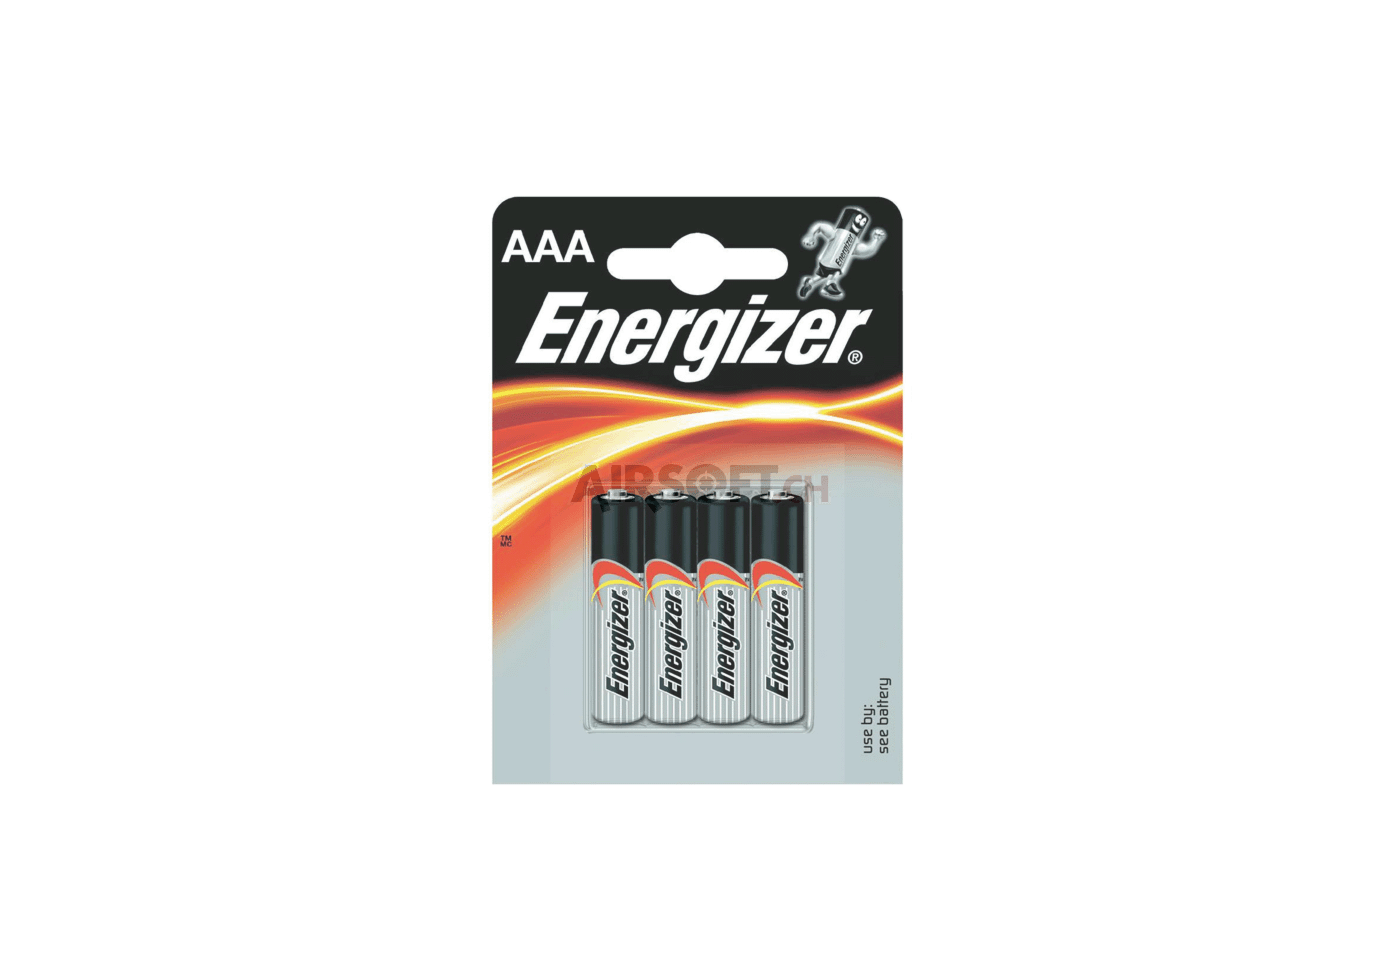 aaa ultra energizer batterien equipment onlineshop. Black Bedroom Furniture Sets. Home Design Ideas